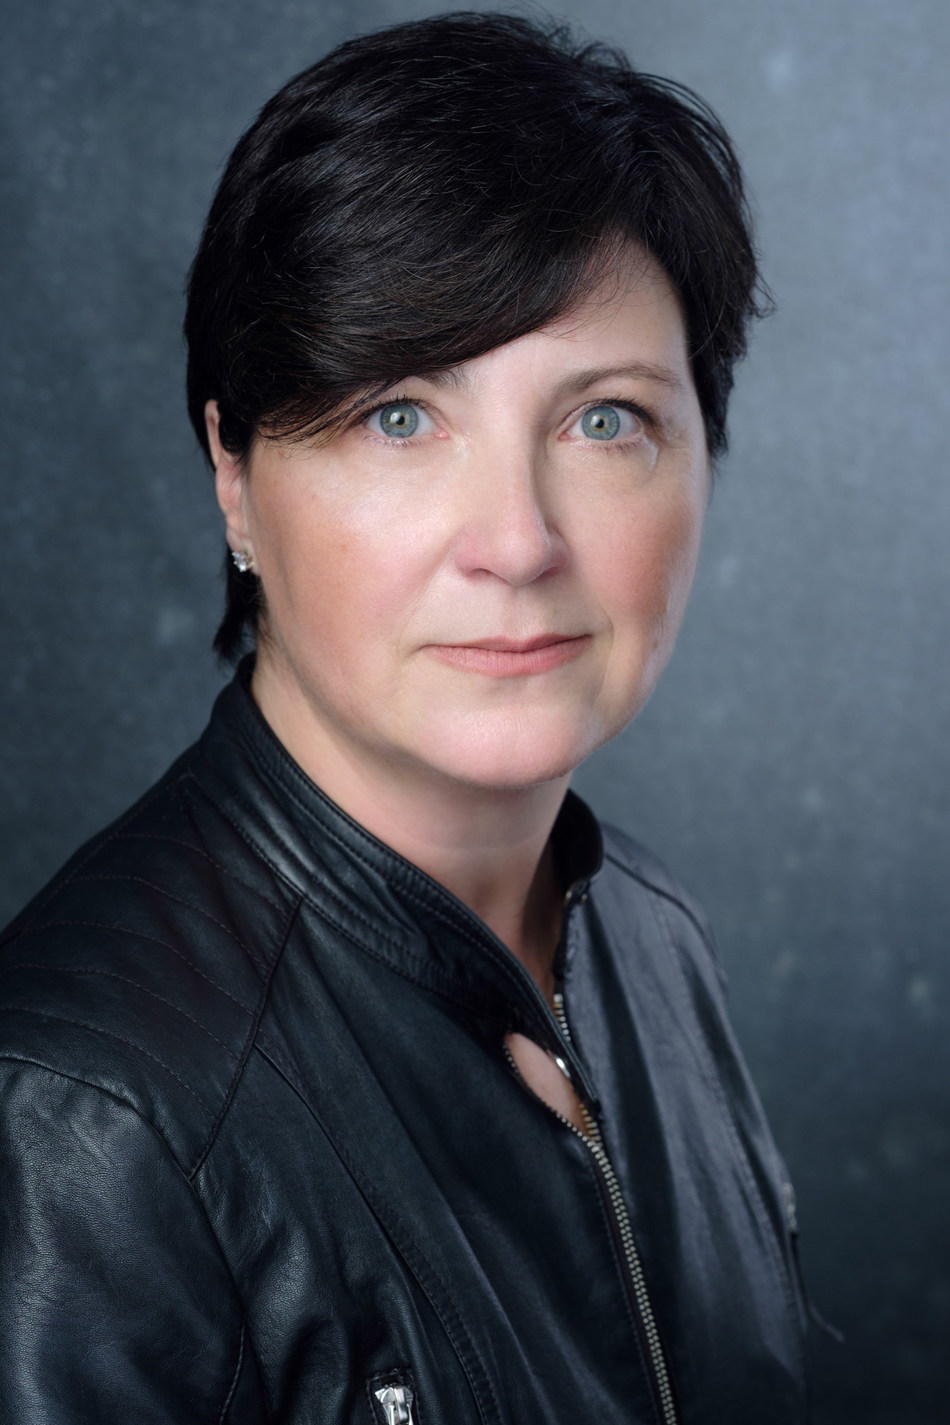 Erica Sheward new Director at The Global Food Safety Initiative (GFSI).